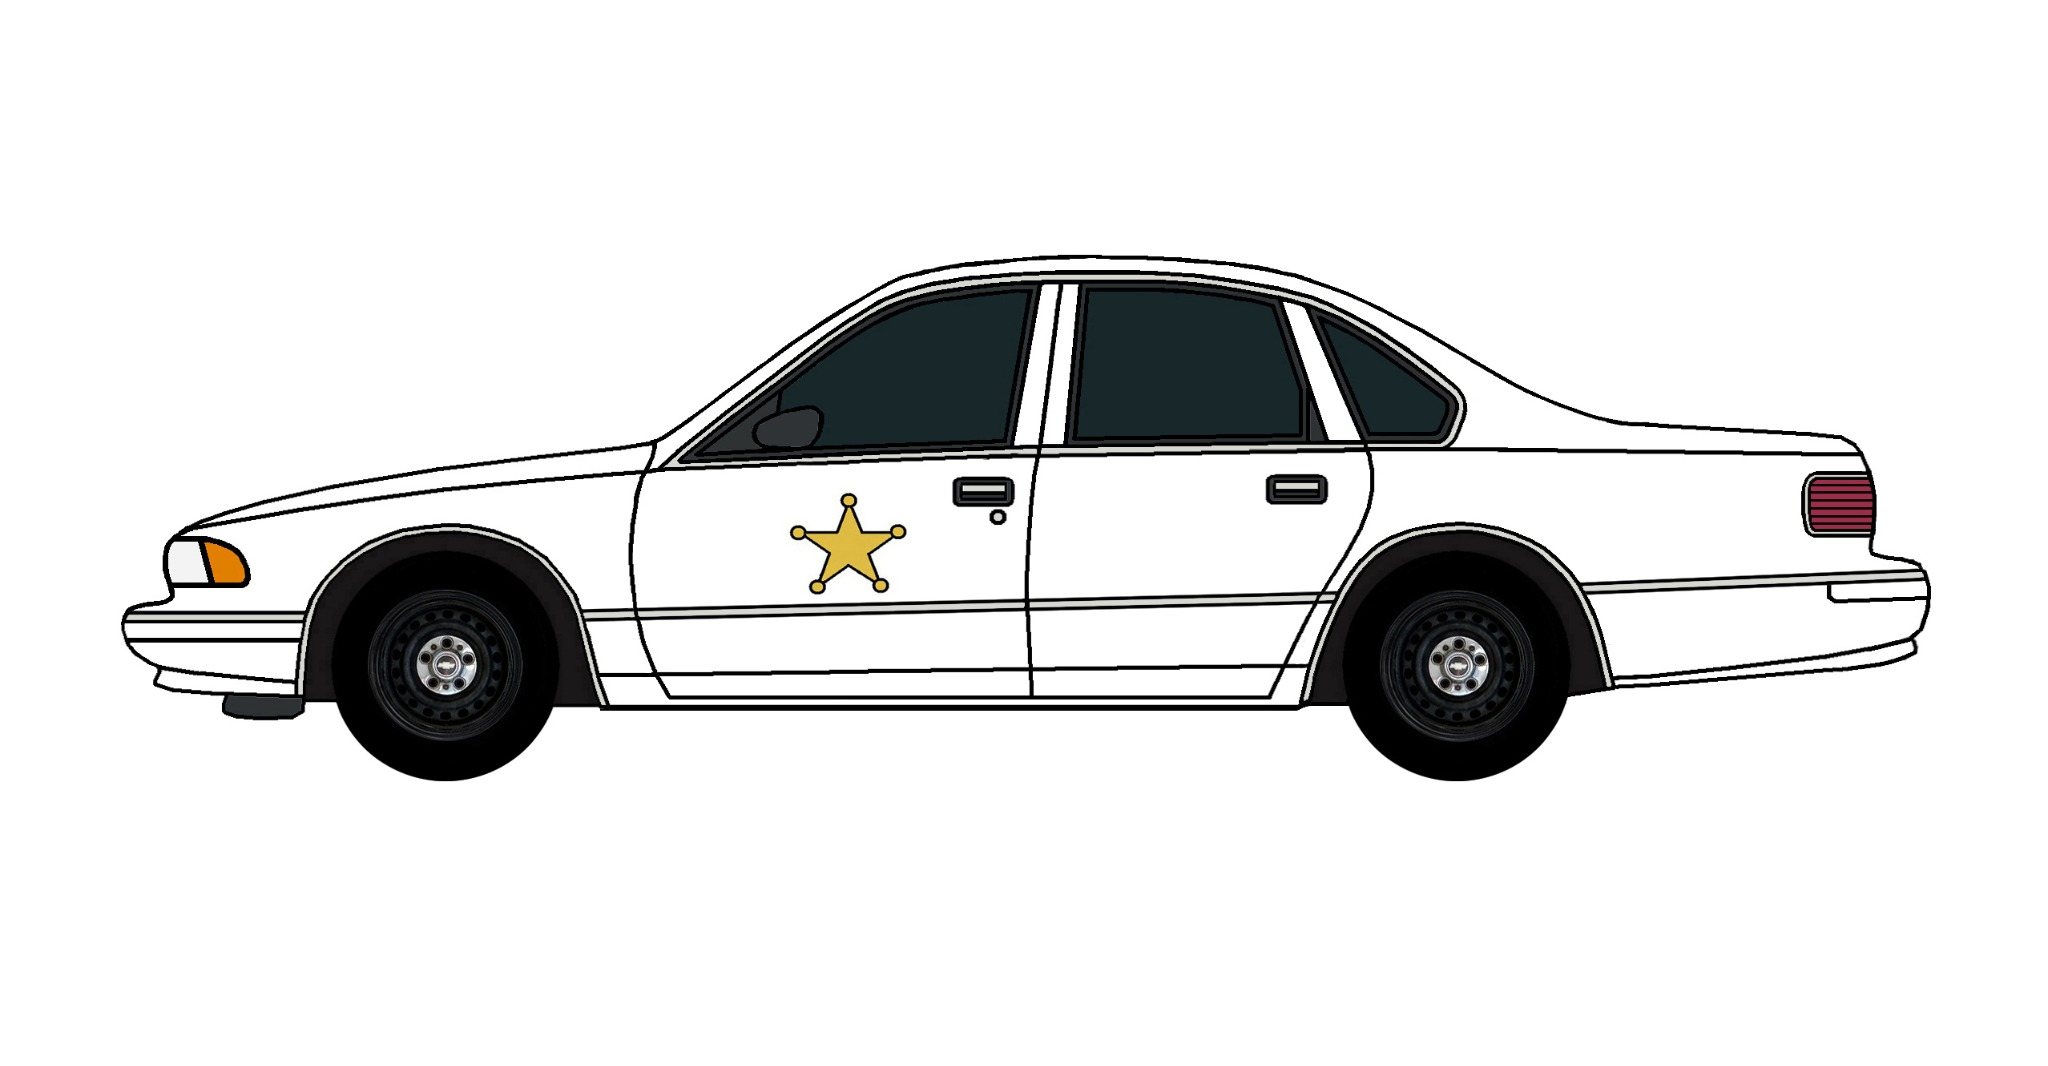 1995 Chevy Caprice Police Car WHITE